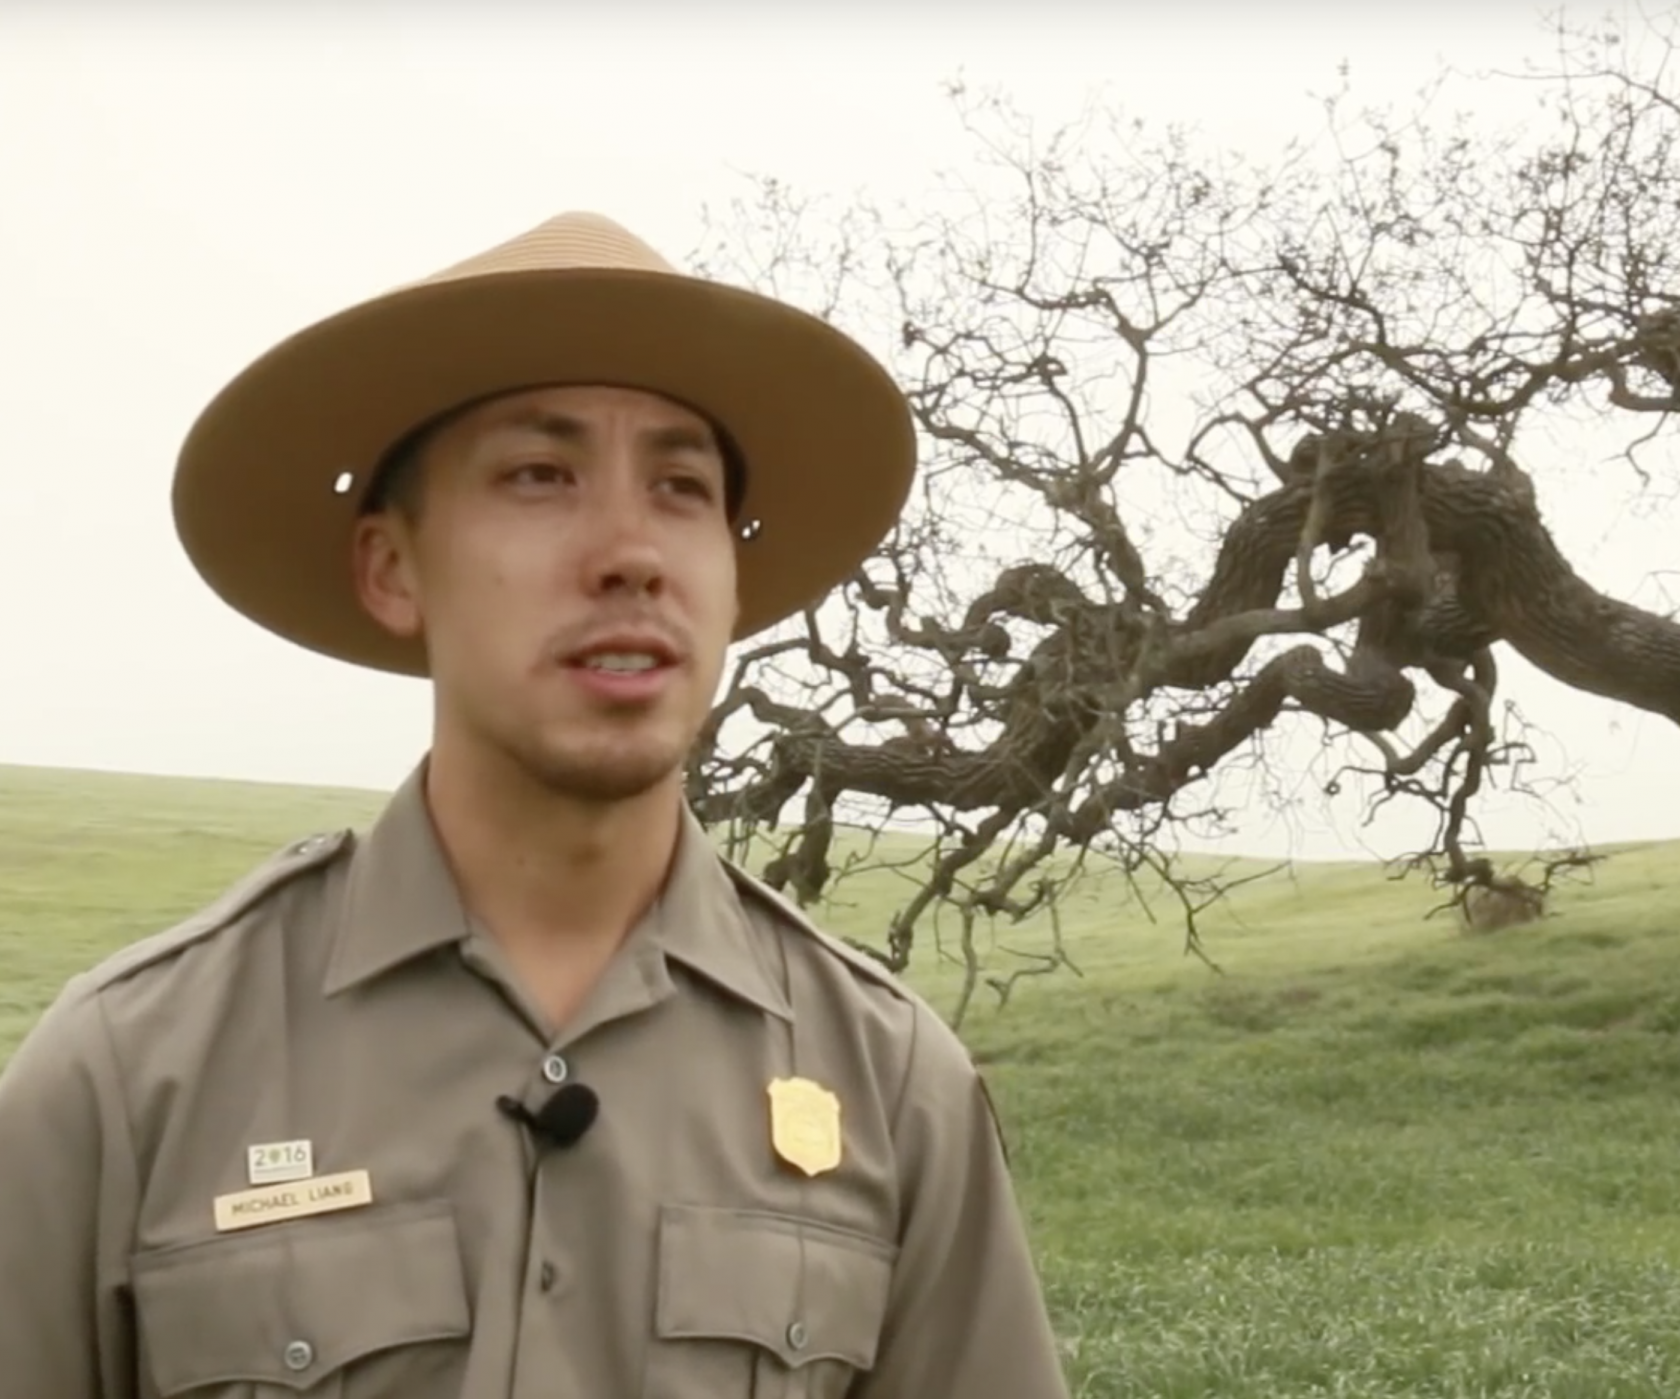 National Park Ranger Michael Liang talking with a tree in the background at Santa Monica National Recreation Area